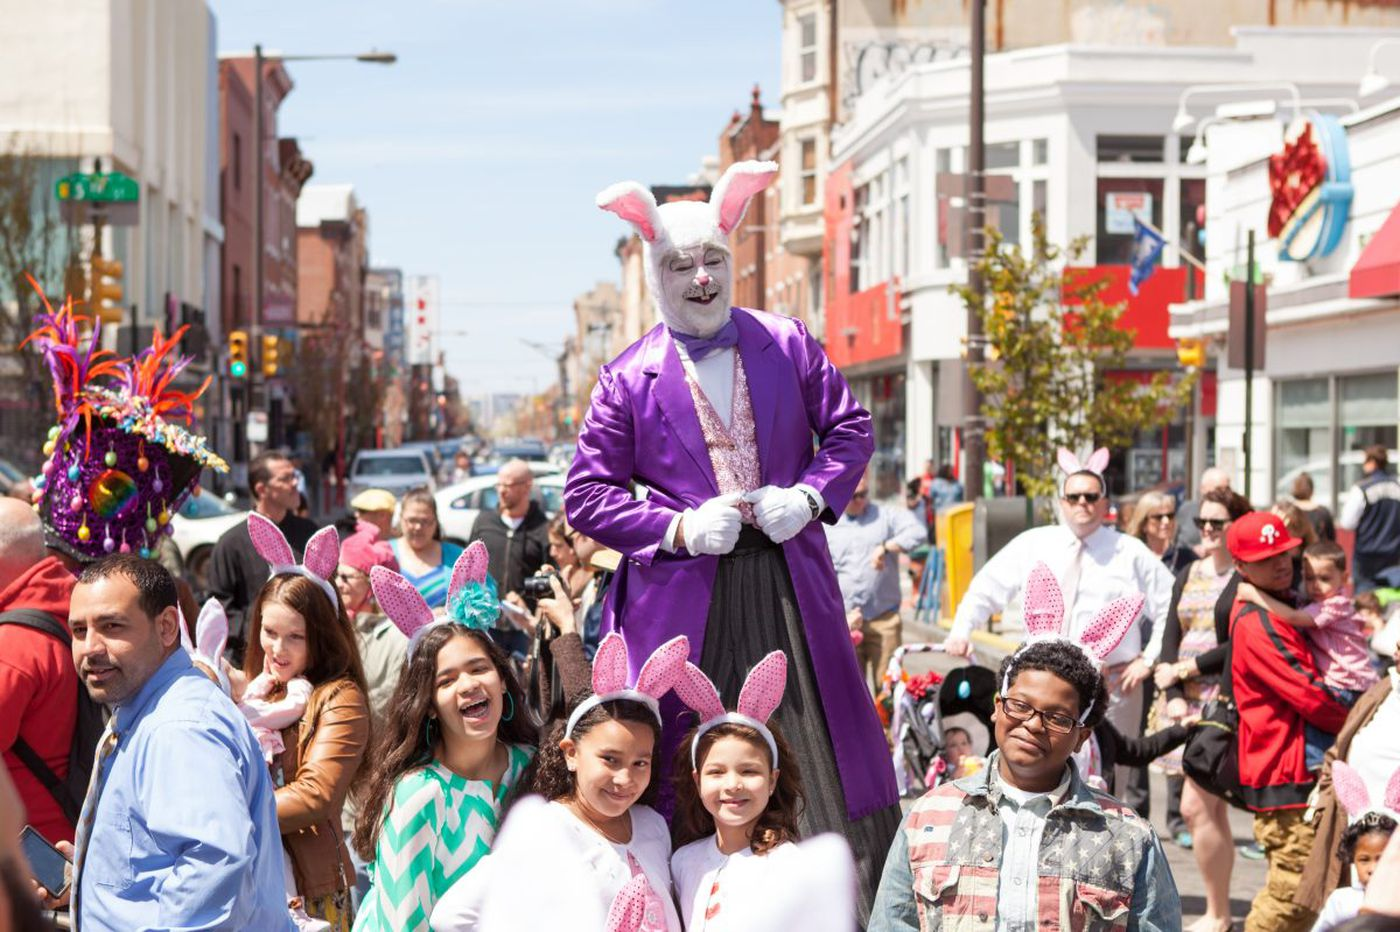 7 days of things to do in Philadelphia from April 1 to 7